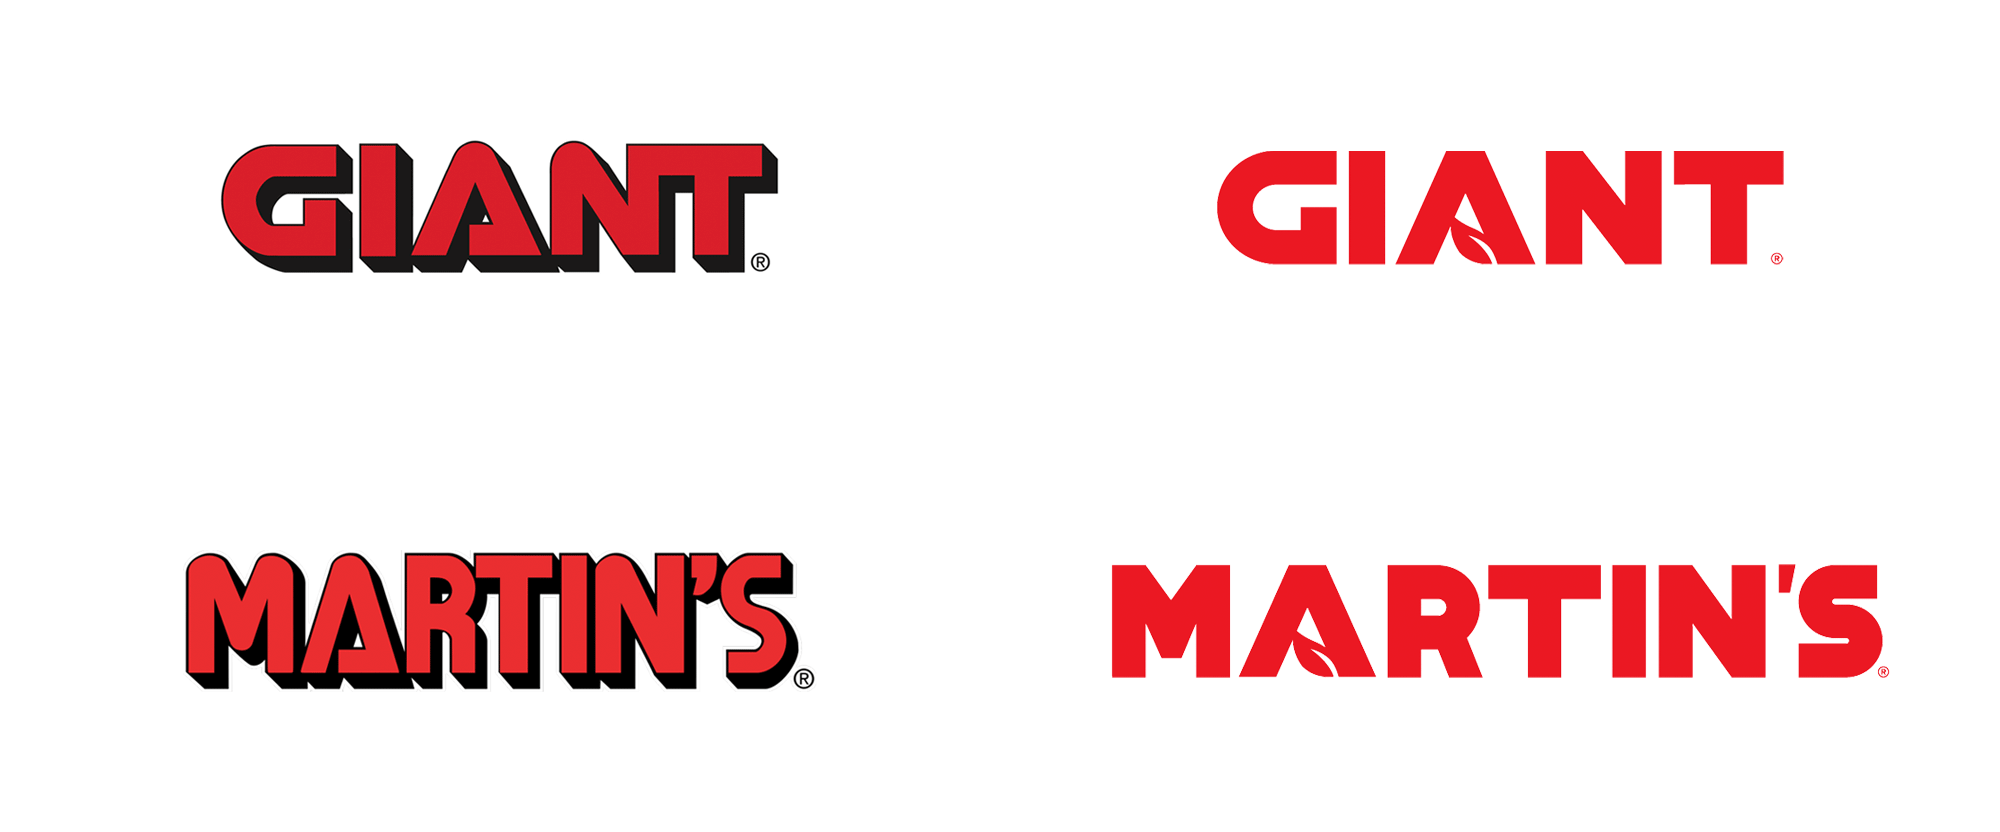 New Logos for Giant and Martin's